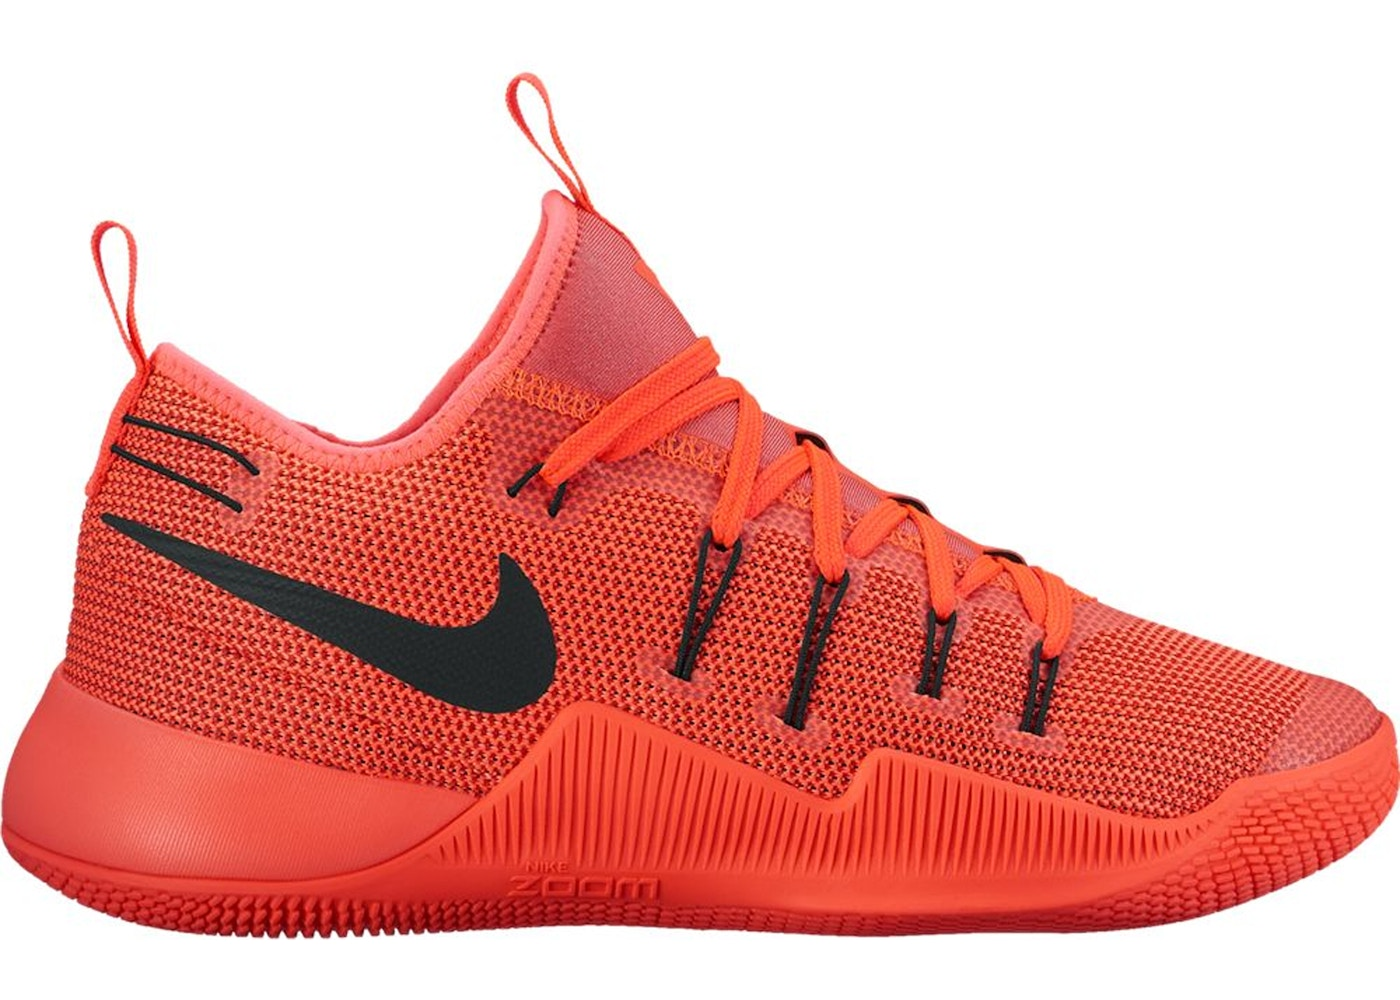 new style 59f9b 7a9ff Nike Hypershift University Red - 844369-607